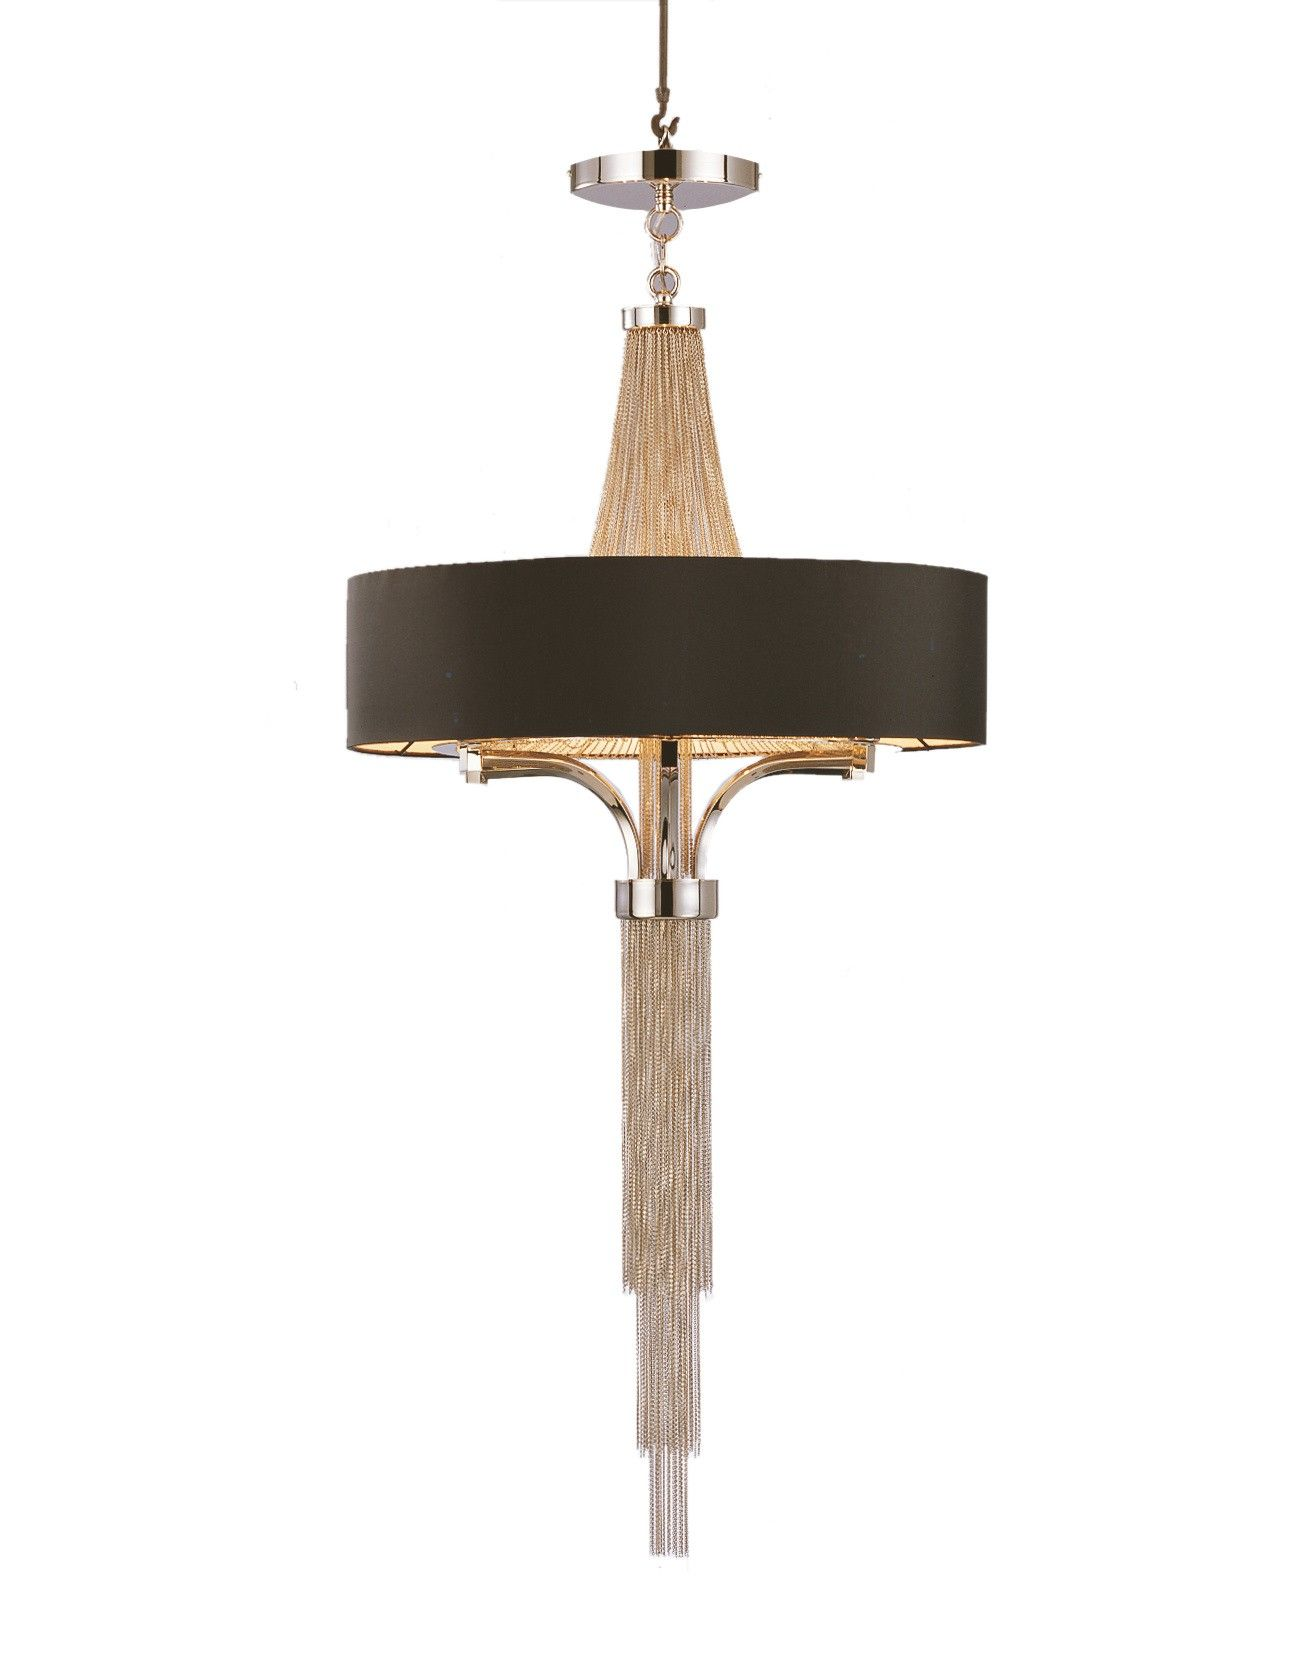 Langan Chandelier with Black Shade The Langan Chandelier is a